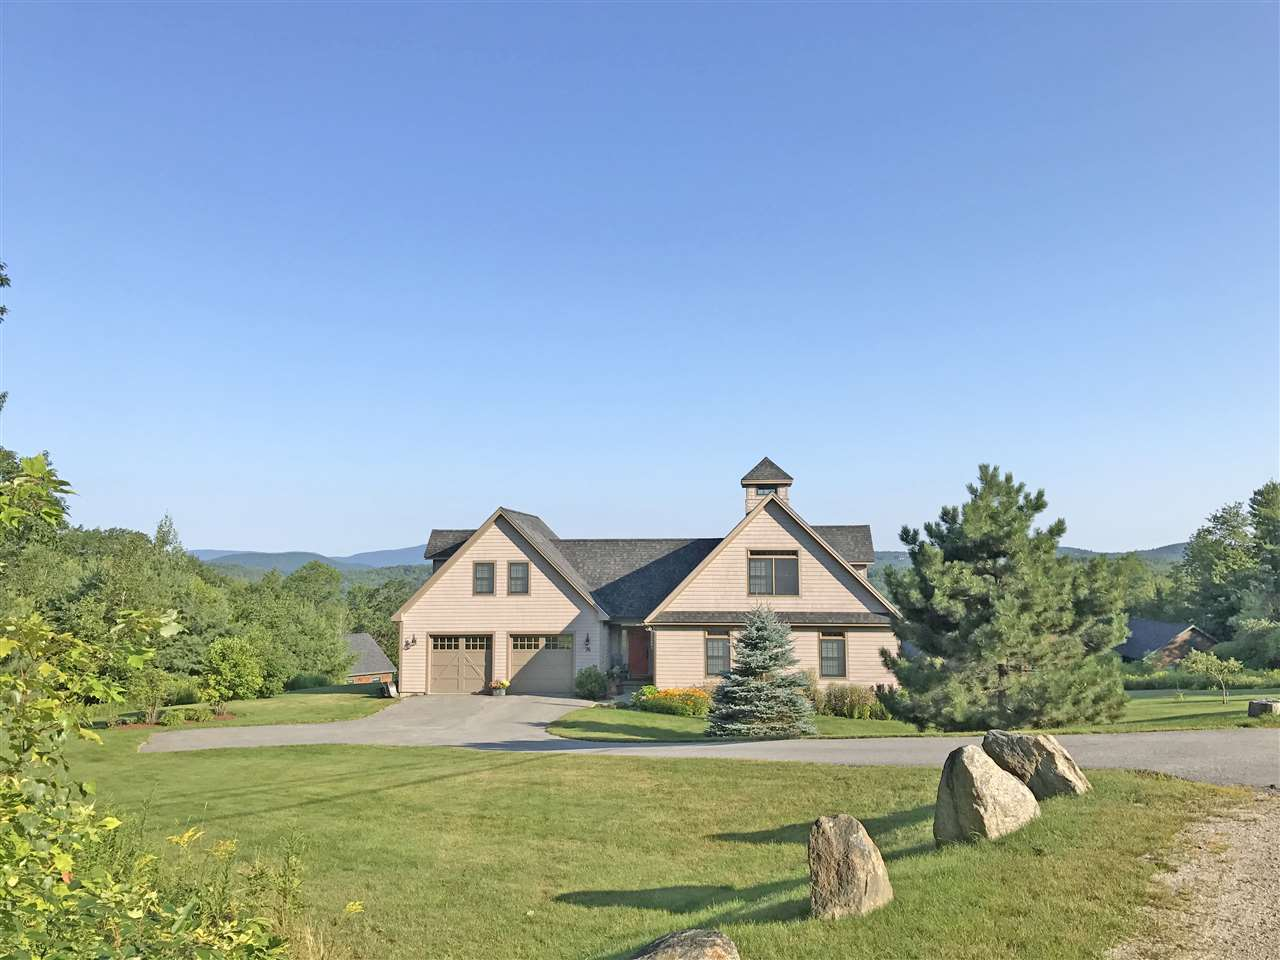 76 Burkehaven Hill Road, Sunapee, NH 03782